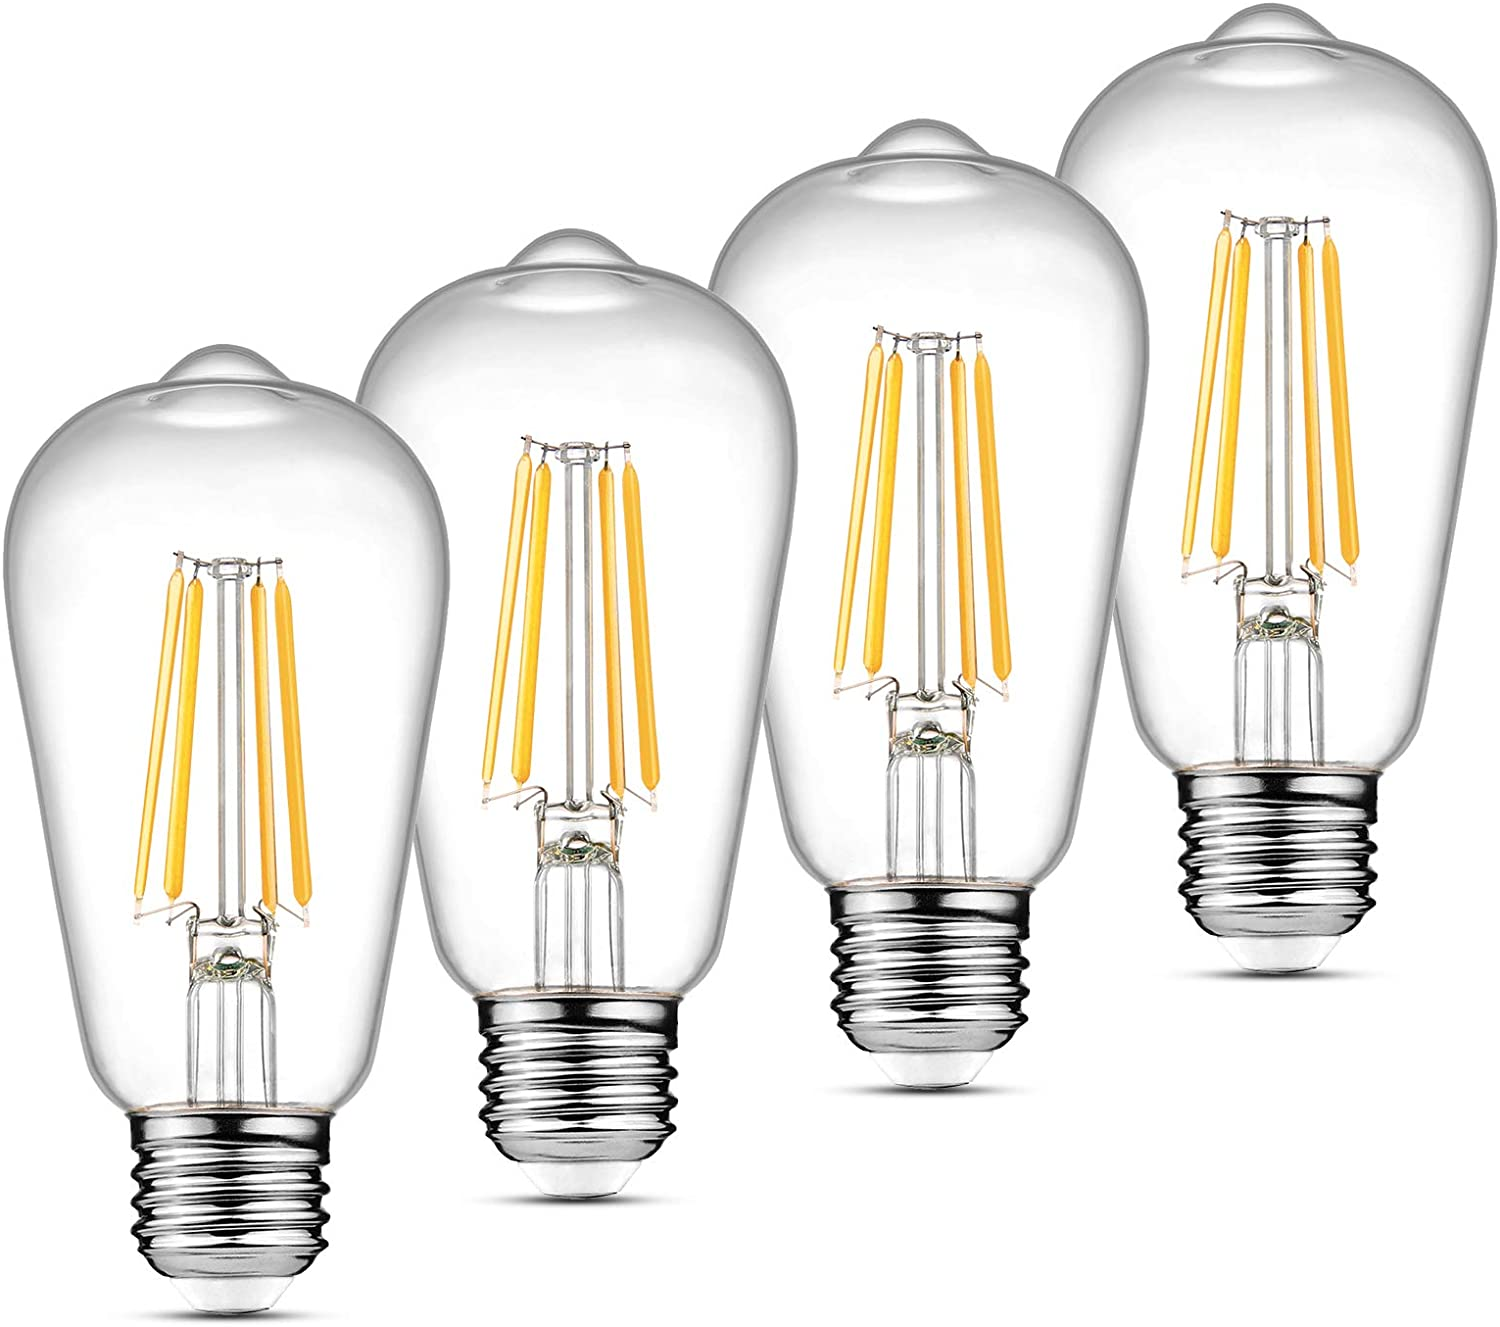 E12 Candelabra Base 2700K Warm White American Lighting Dimmable LED CA10 Opaque Flame Tip Light Bulbs 25-Pack